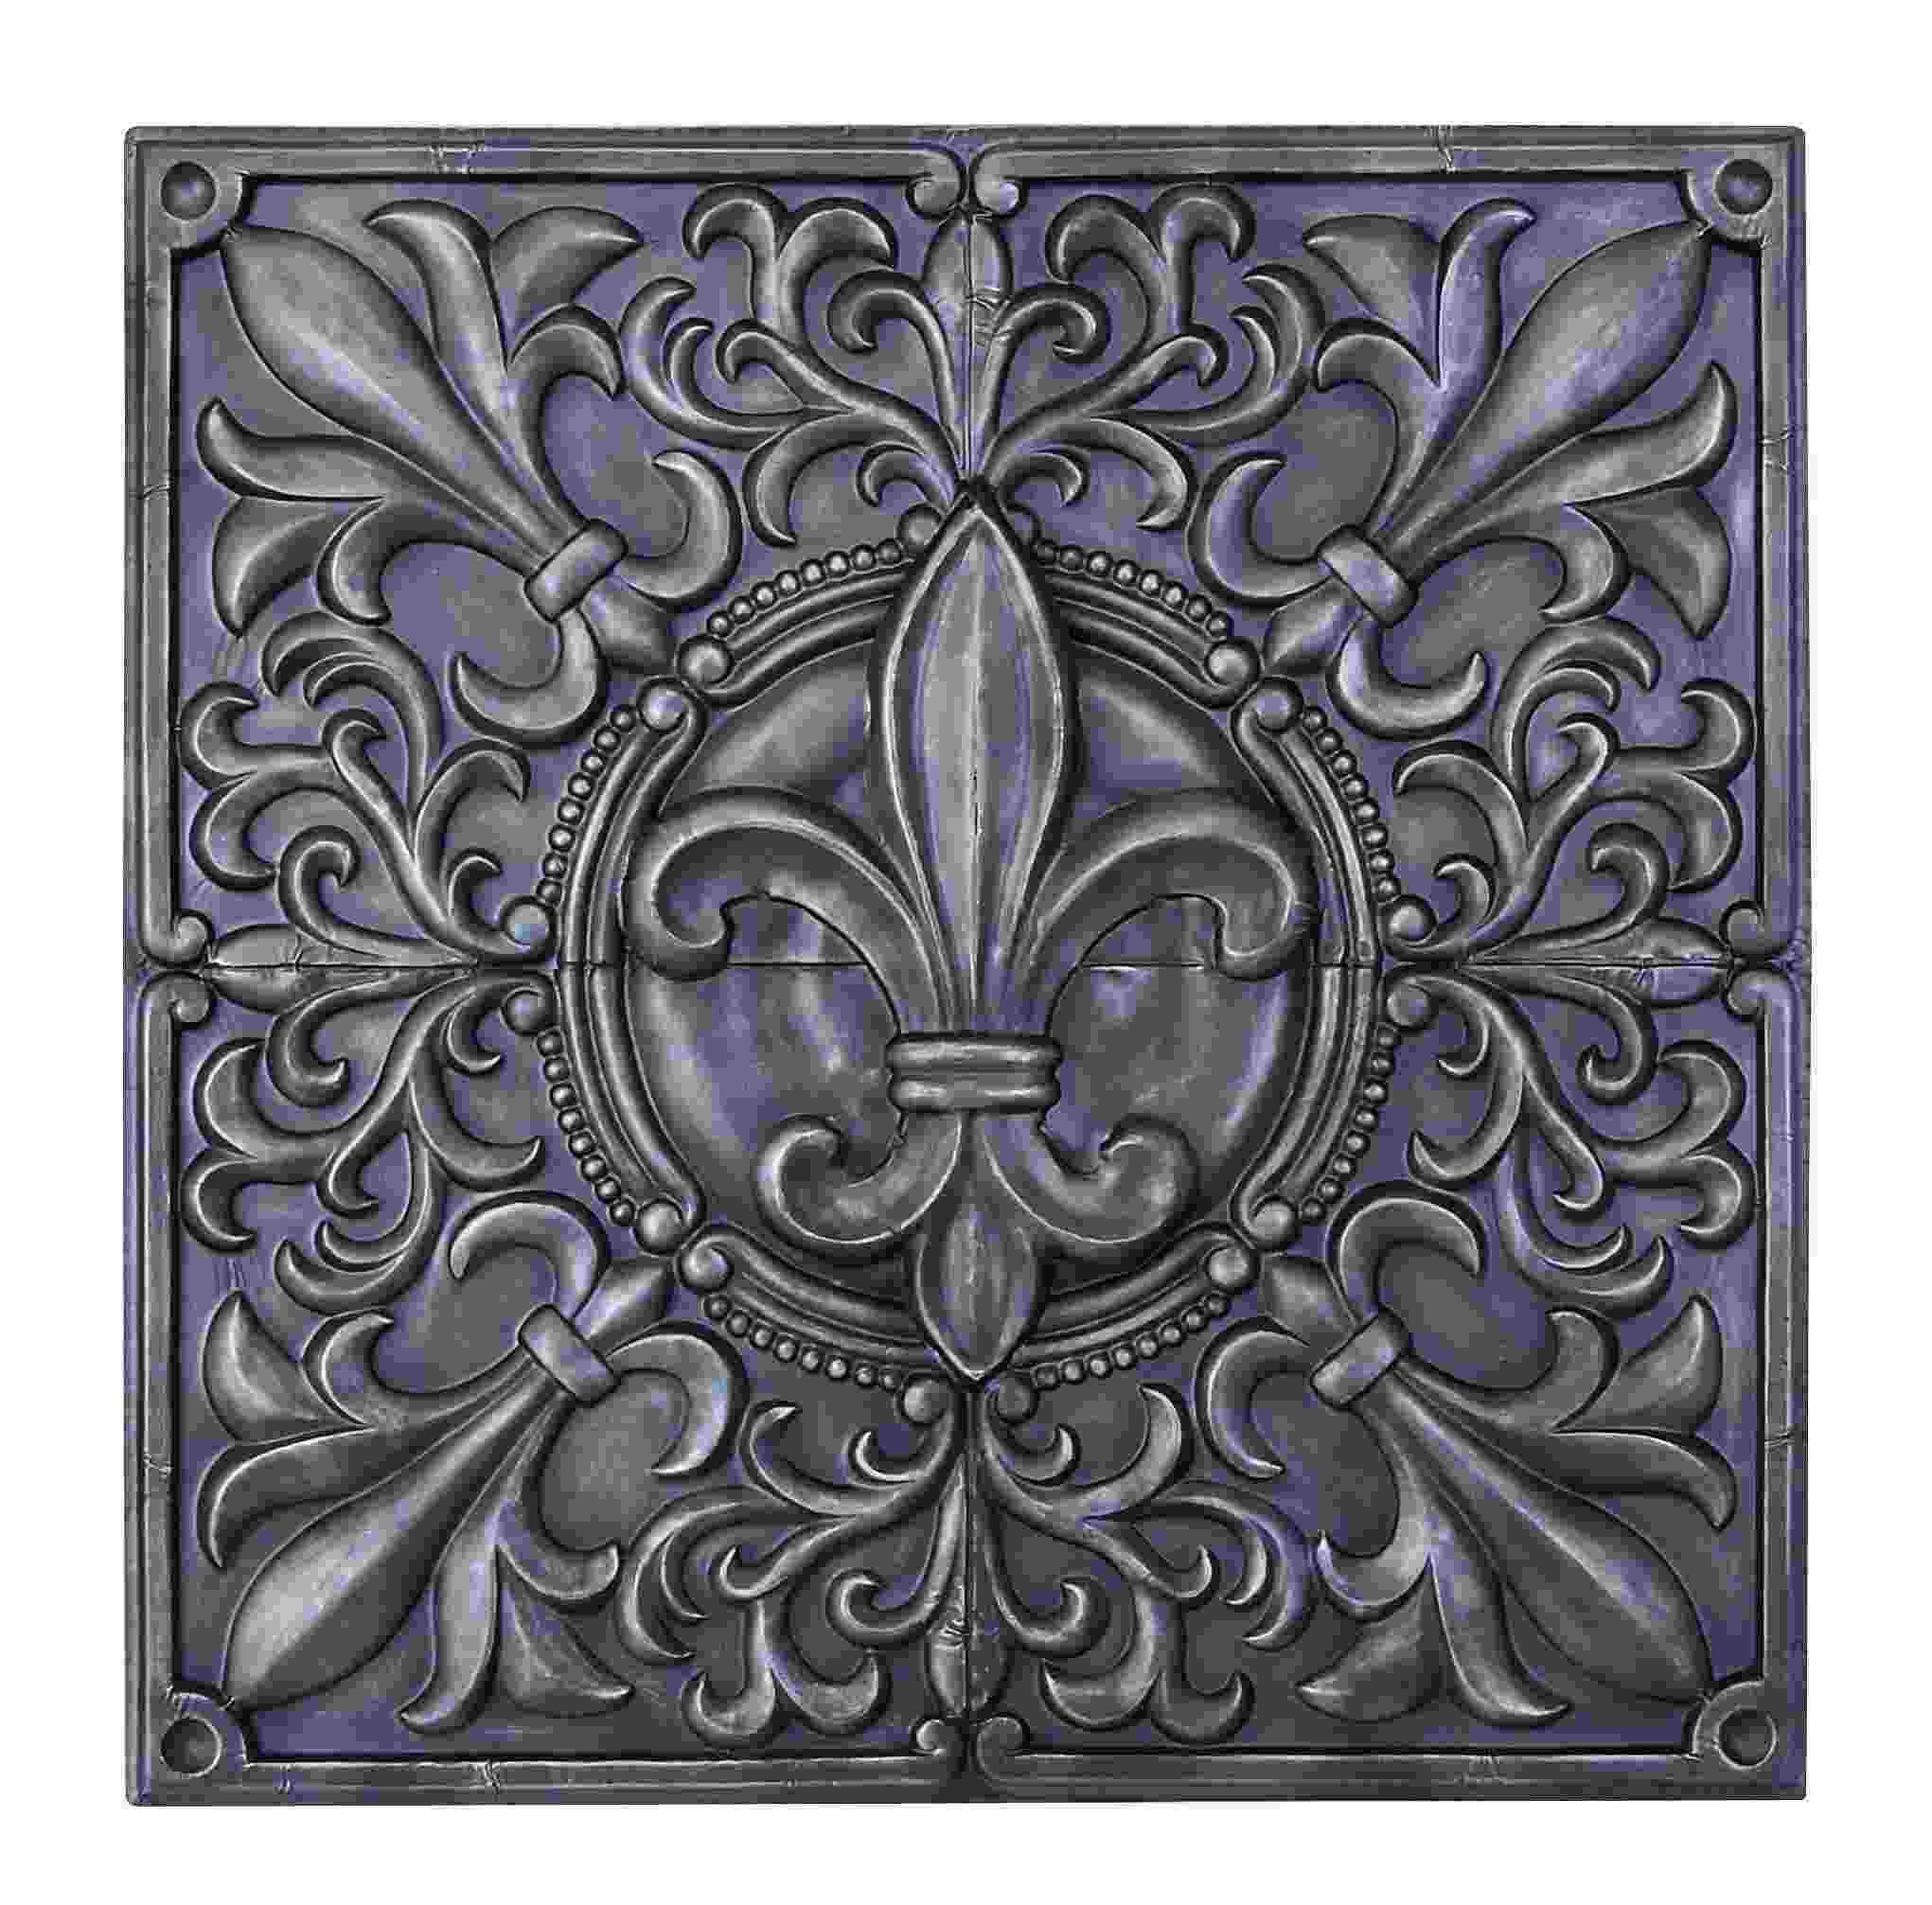 Square Metal Wall Art Pewter Fleur De Lis Square Metal Wall Intended For Best And Newest Square Metal Wall Art (View 11 of 20)